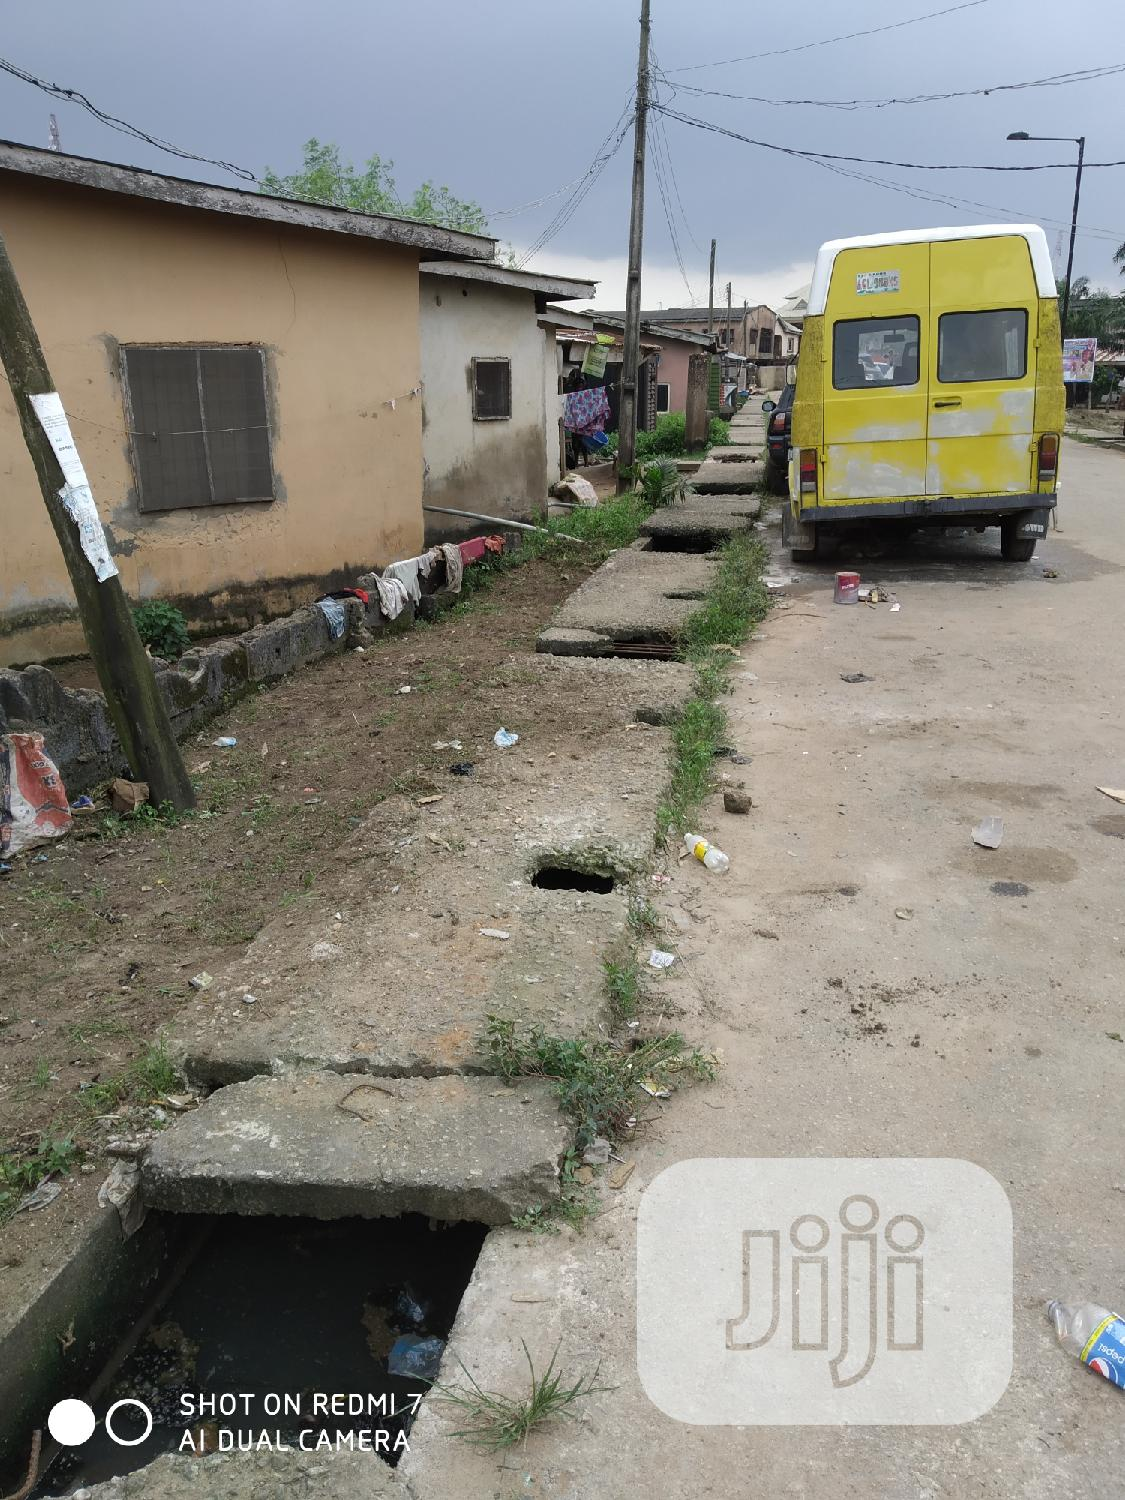 Half Plot of Land on a Tarred Street Off Major Rd, at Isheri Olofin | Land & Plots For Sale for sale in Alimosho, Lagos State, Nigeria